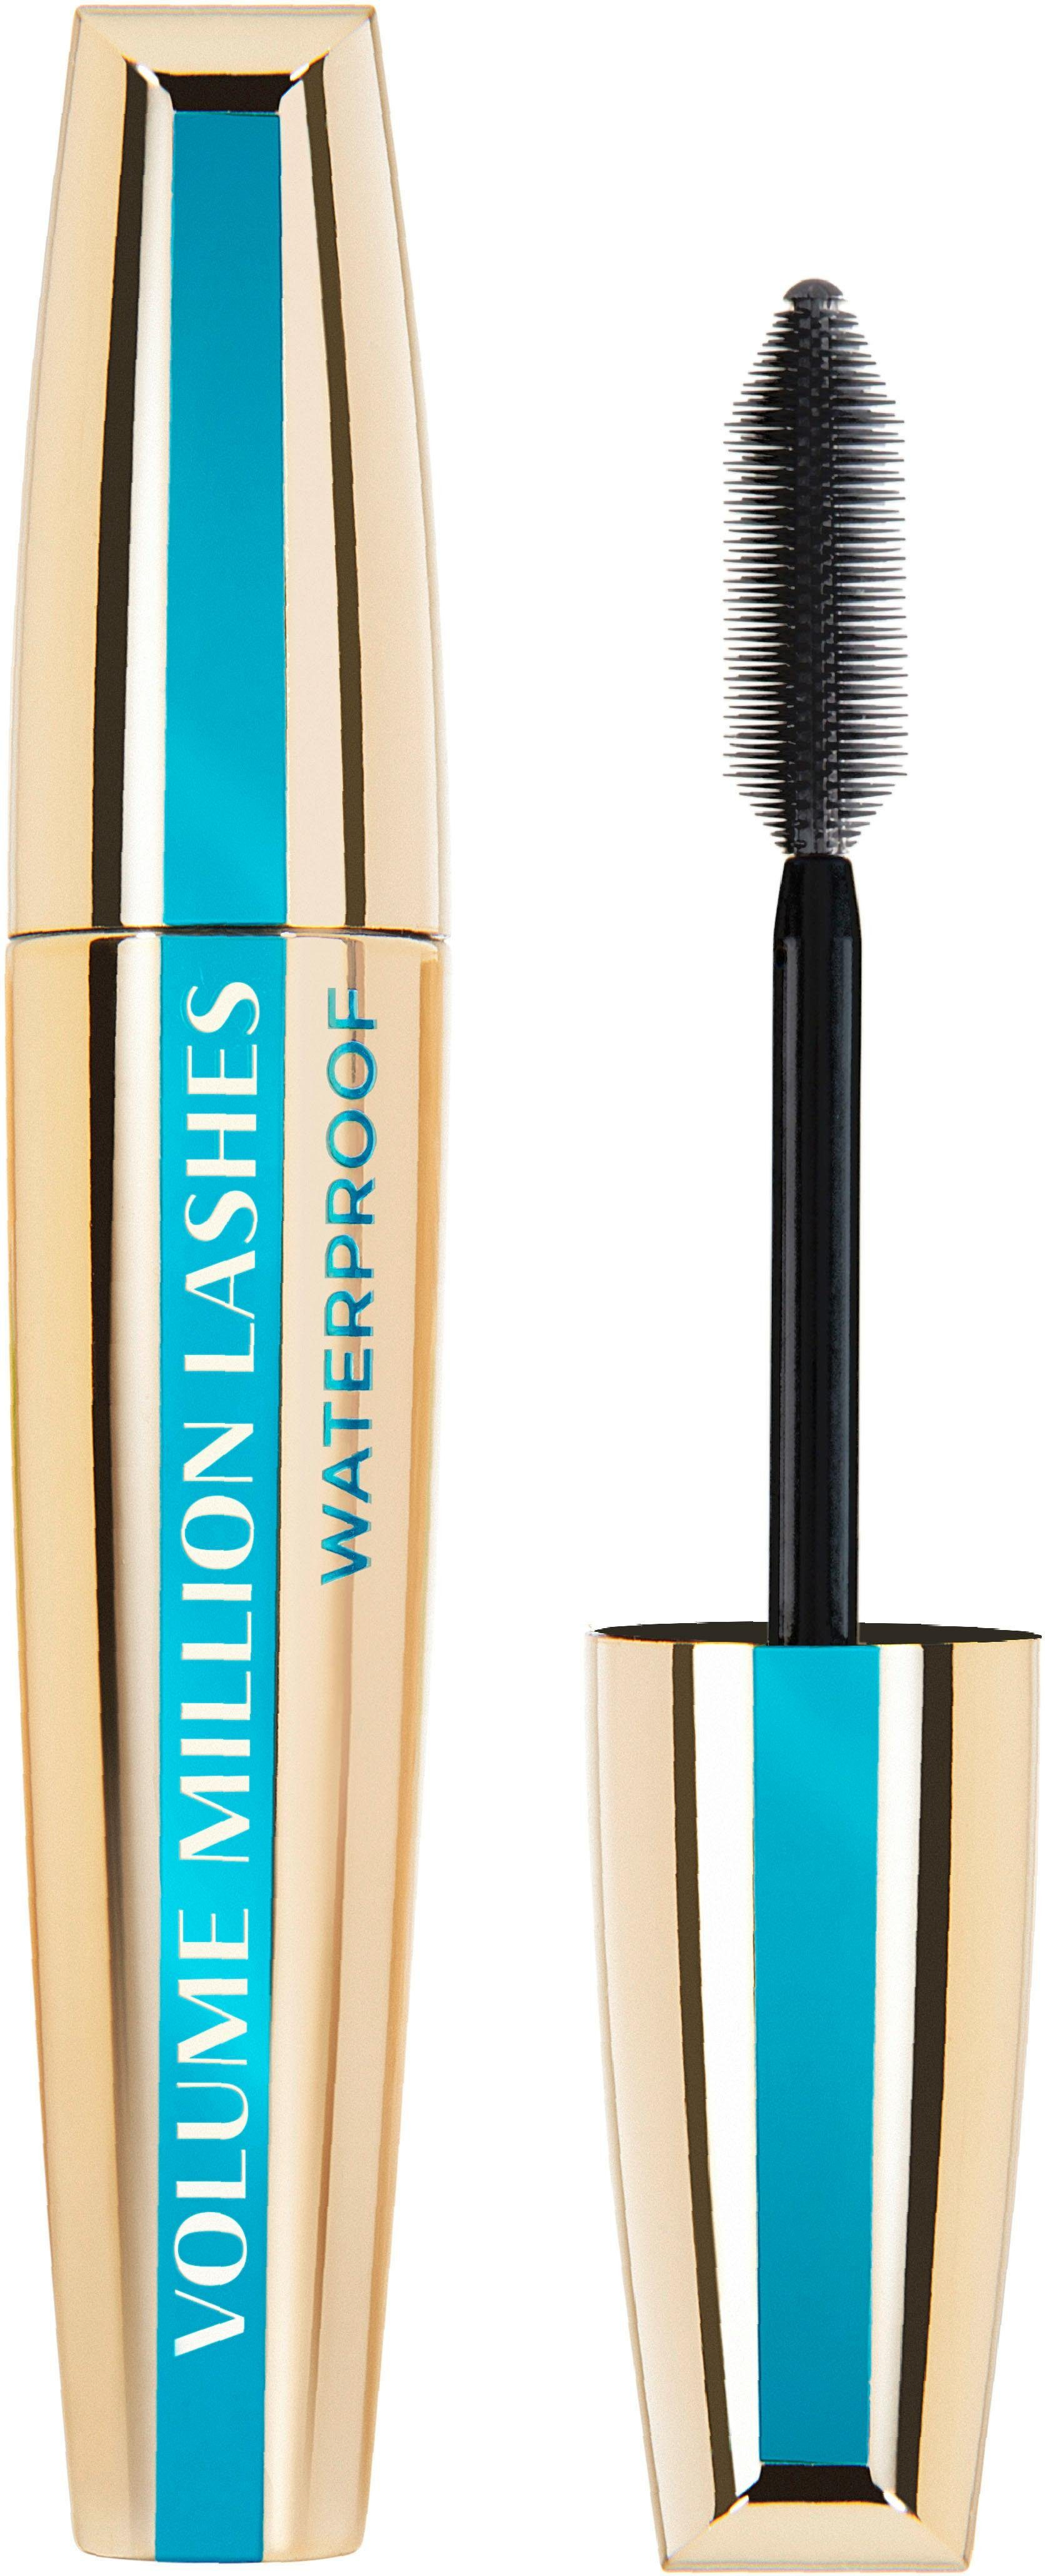 L'Oréal Paris, »Volume Million Lashes Waterproof«, Mascara